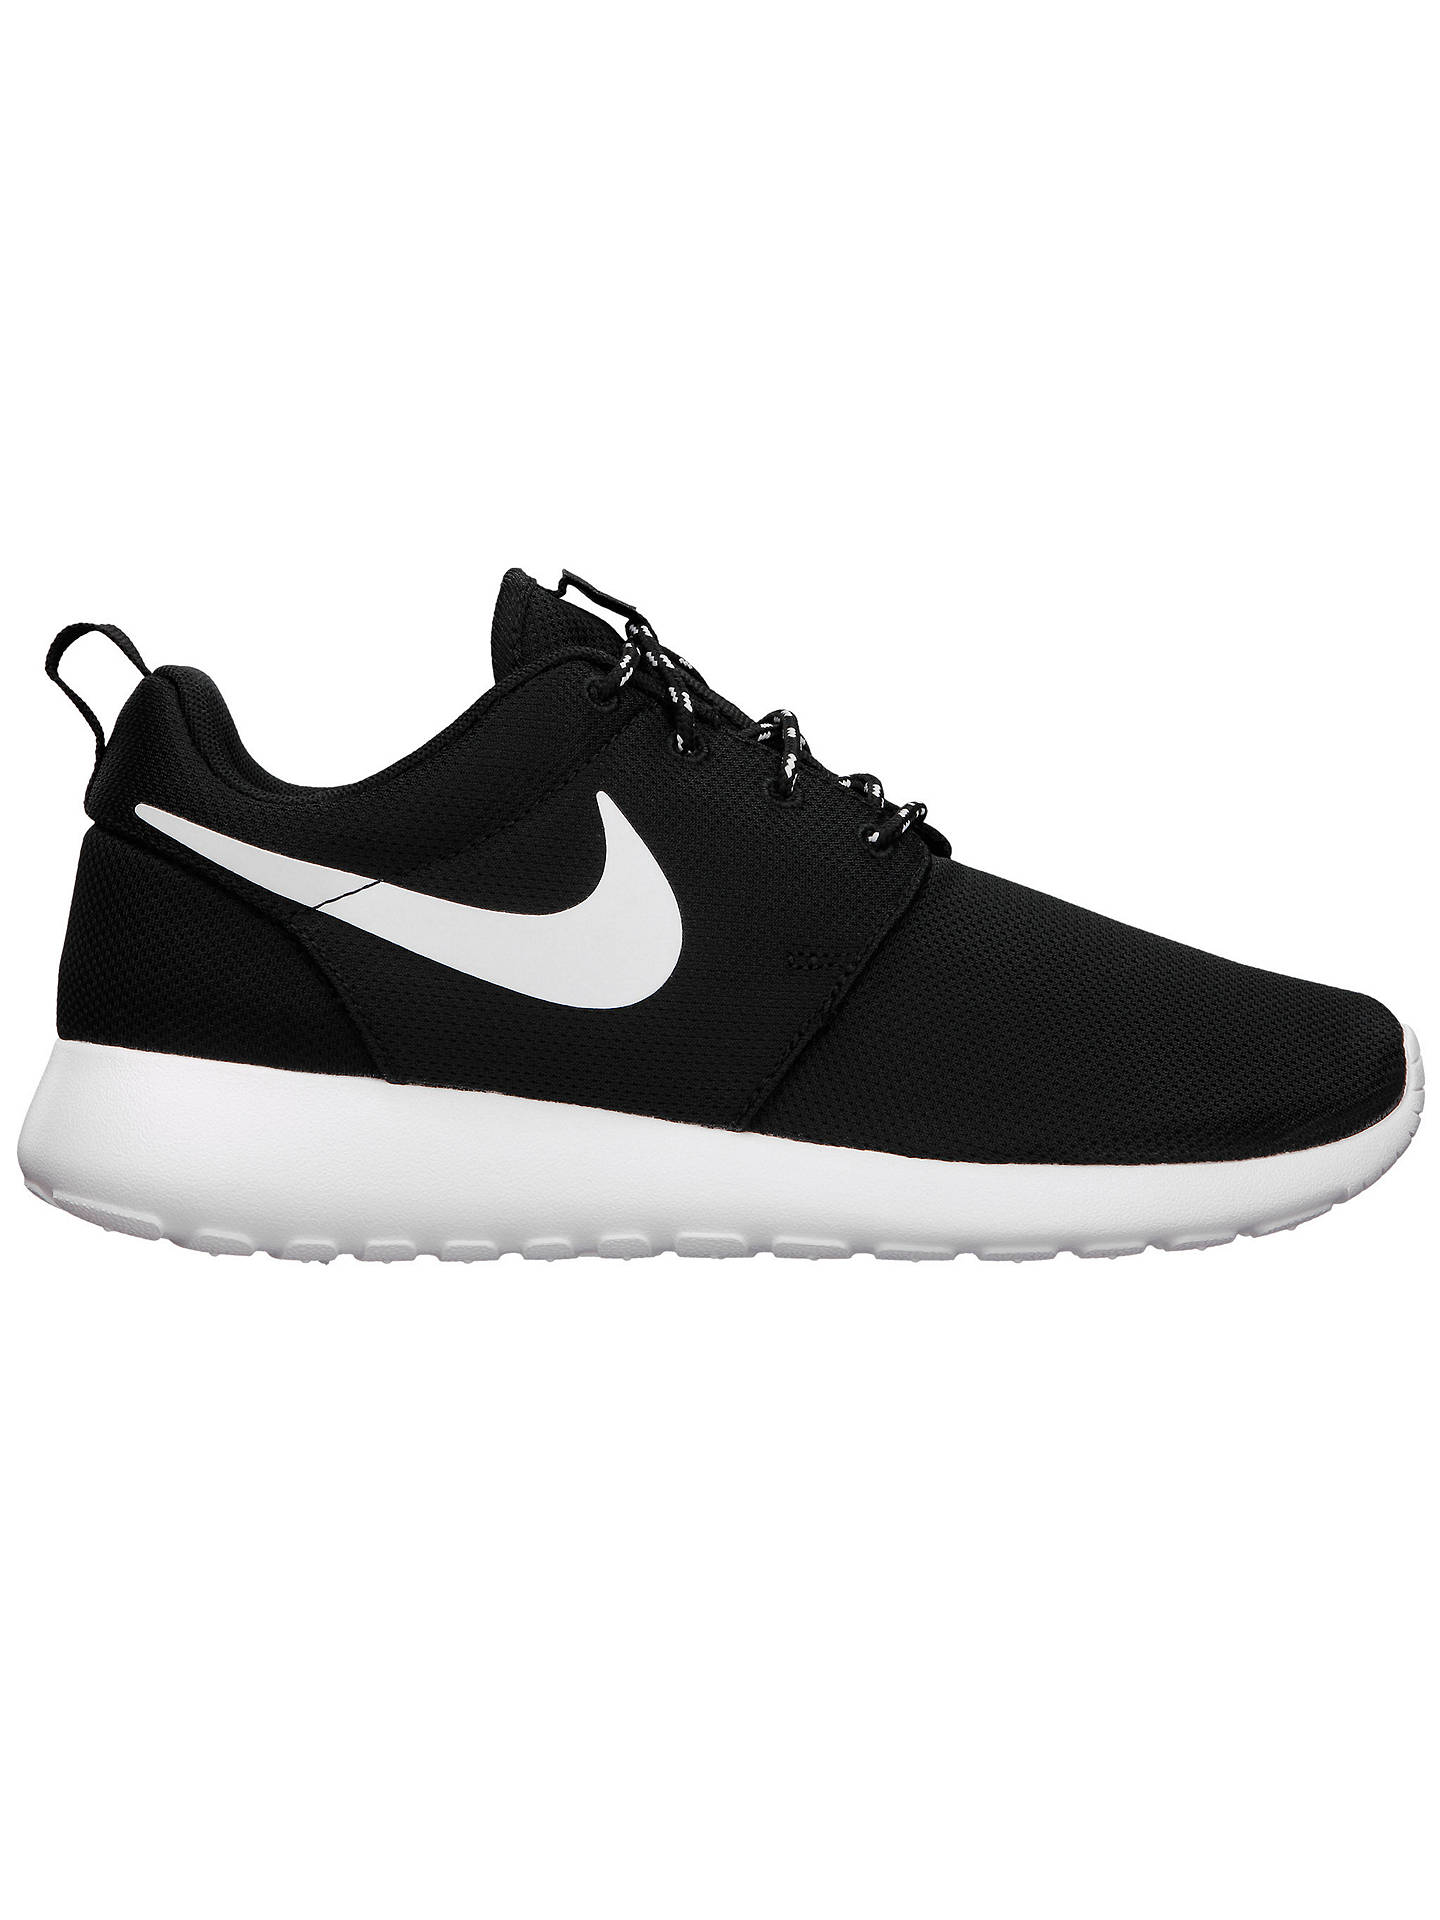 buy popular af303 9ac3d Nike Roshe Run Women's Shoes at John Lewis & Partners